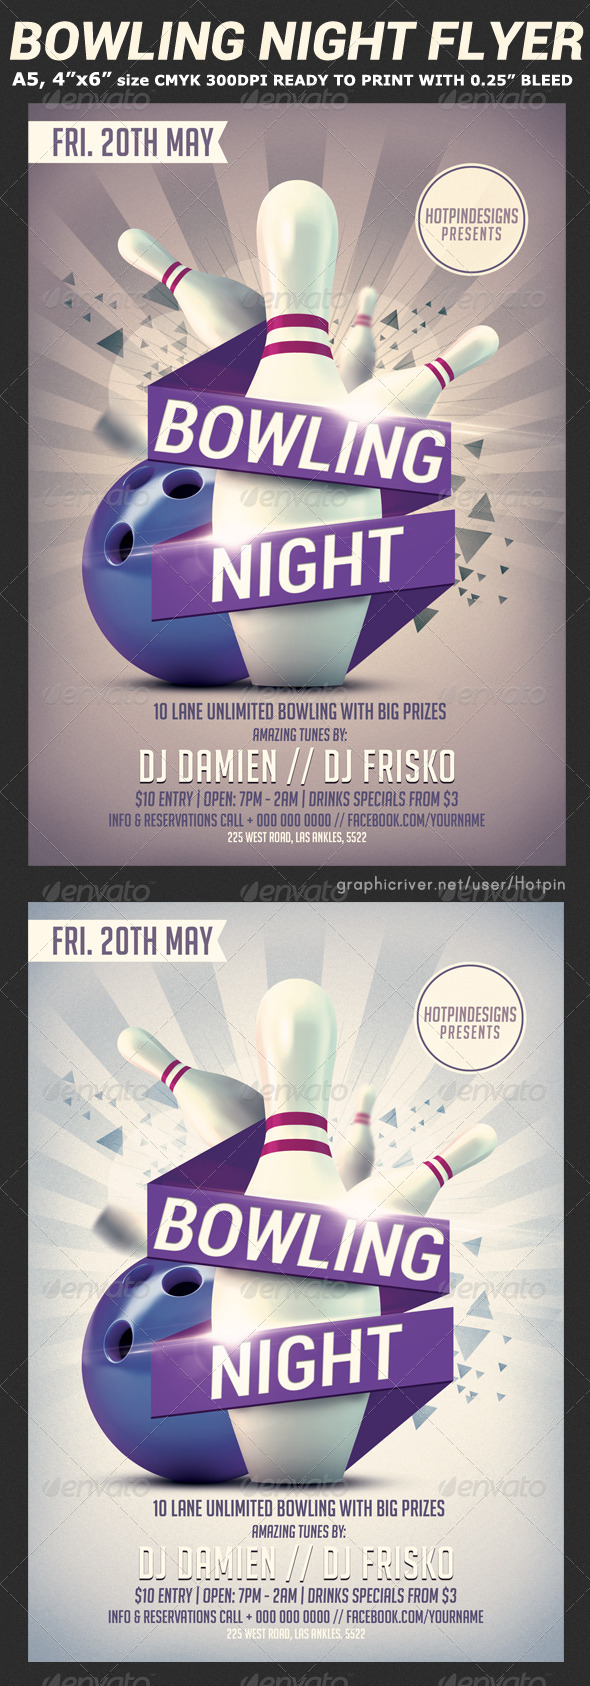 GraphicRiver Bowling Nights Flyer Template V2 7507498